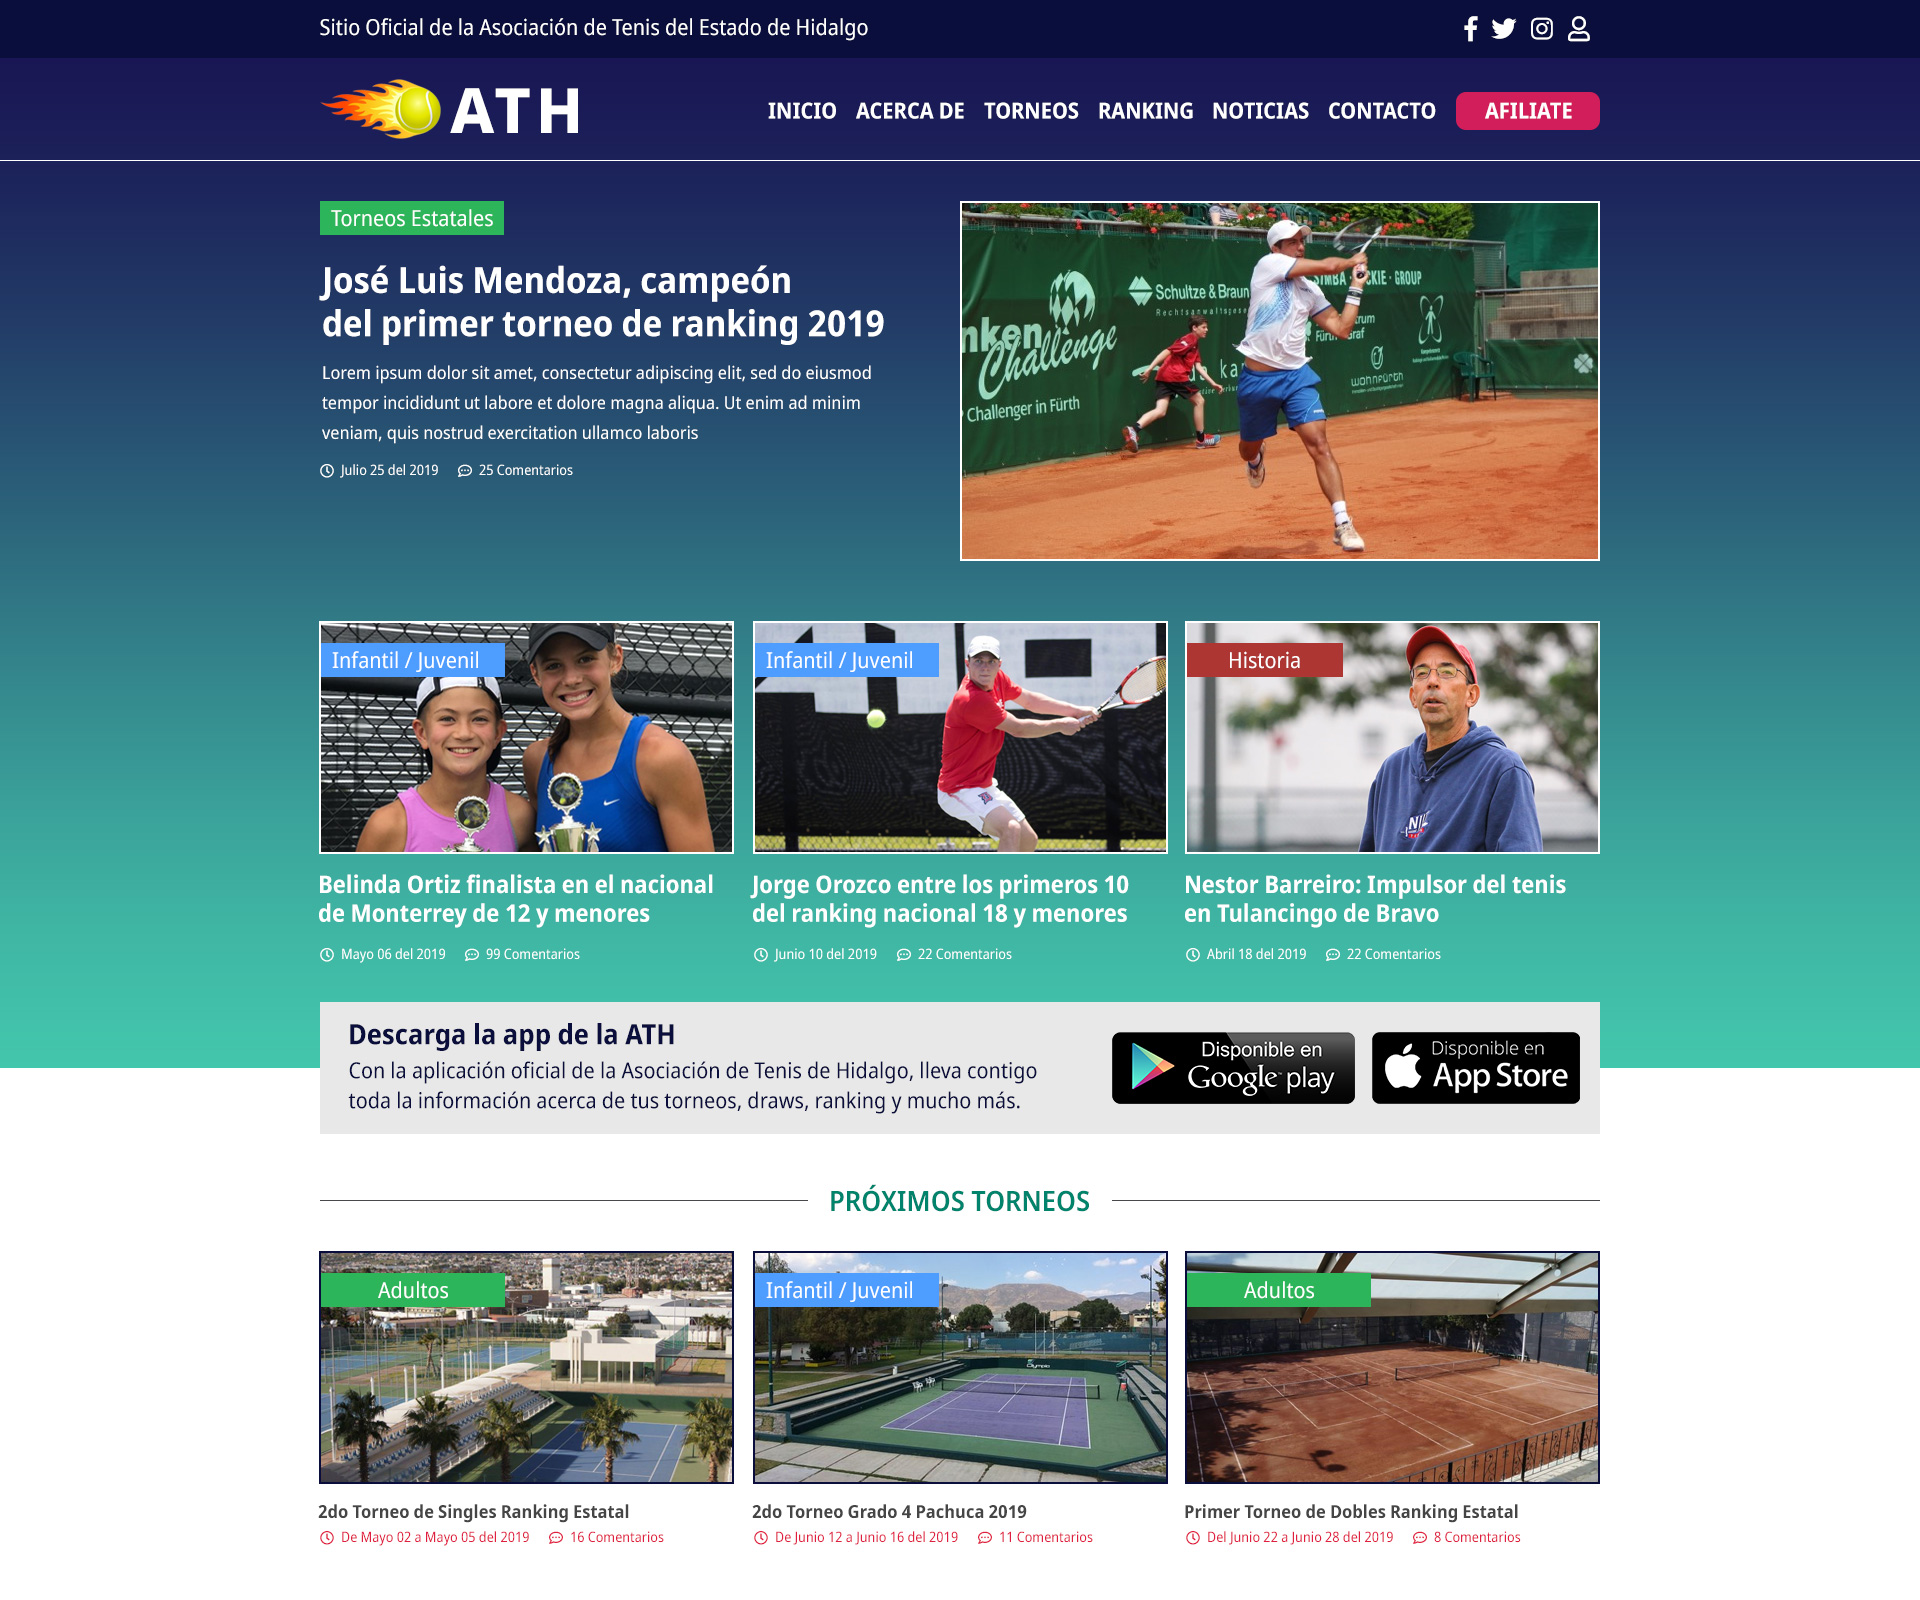 Asociación de Tenis de Hidalgo – Website and Facebook